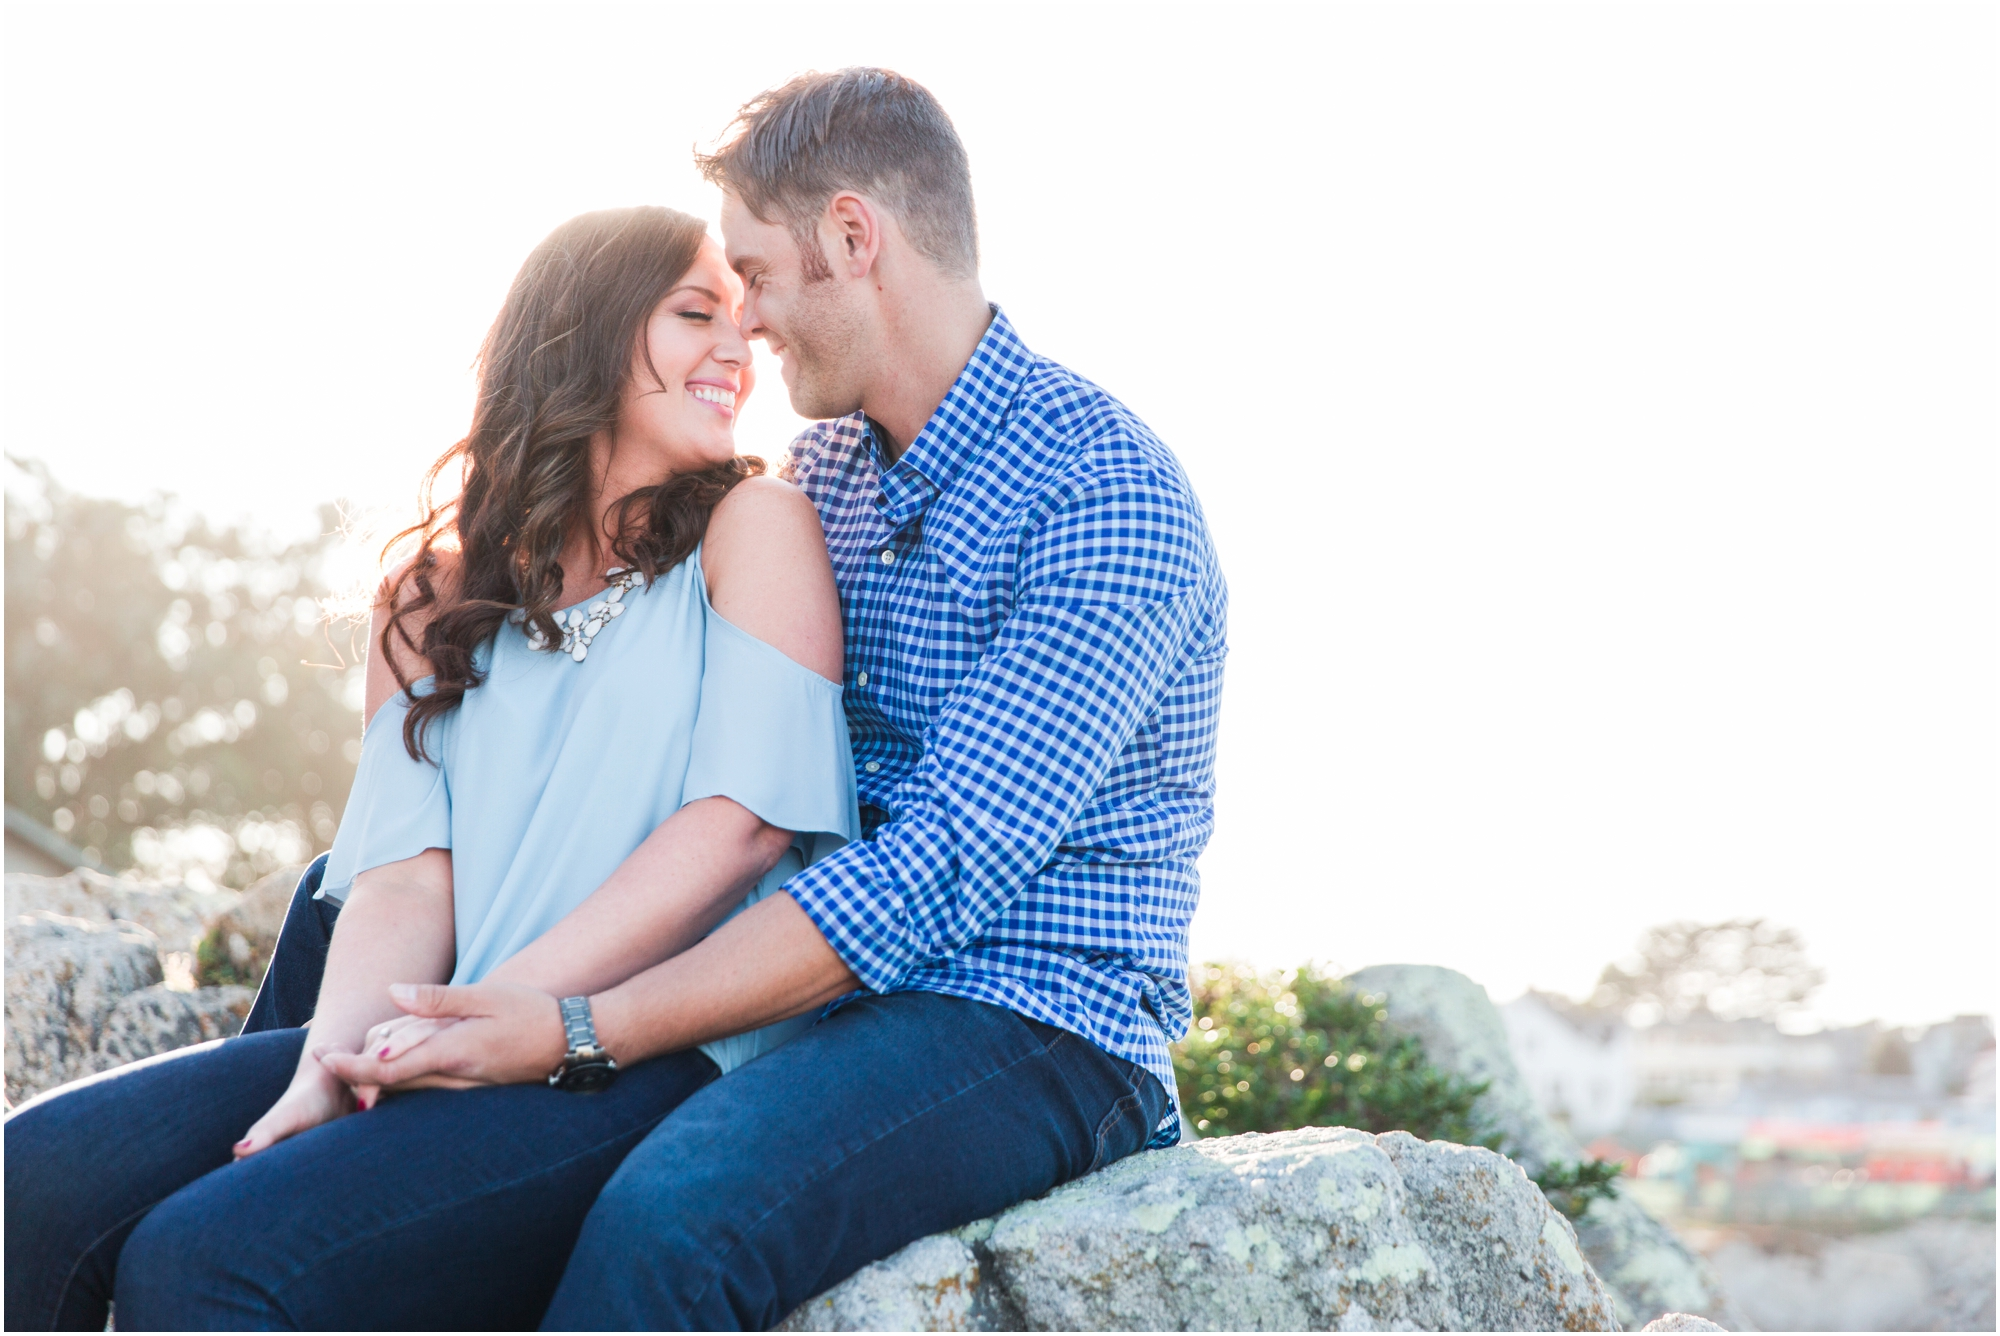 Berwick Park Monterey engagement pictures by Briana Calderon Photography_2382.jpg